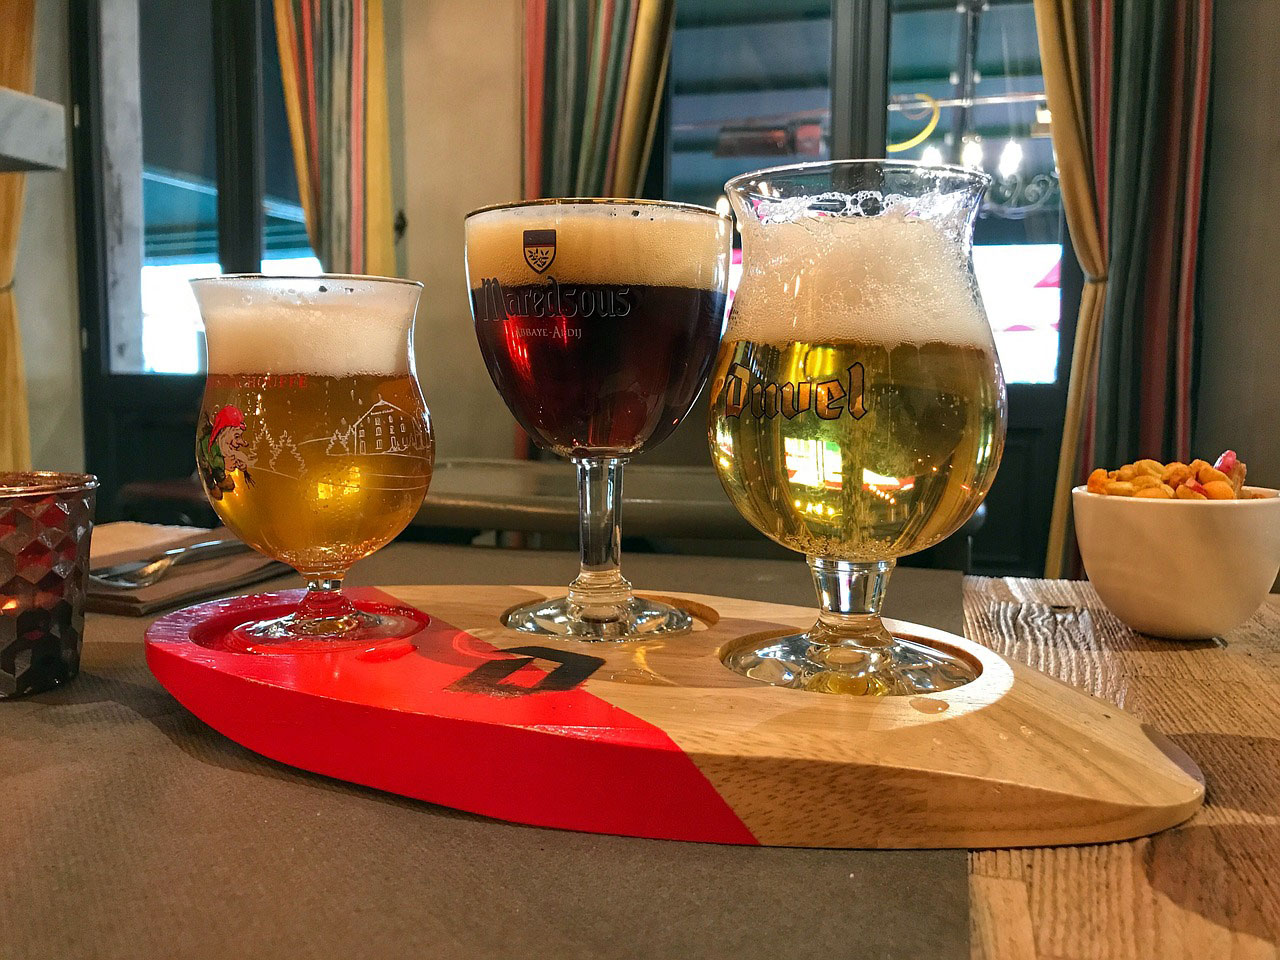 Beer in Belgium - A Taste Tour of 3 Belgian Cities